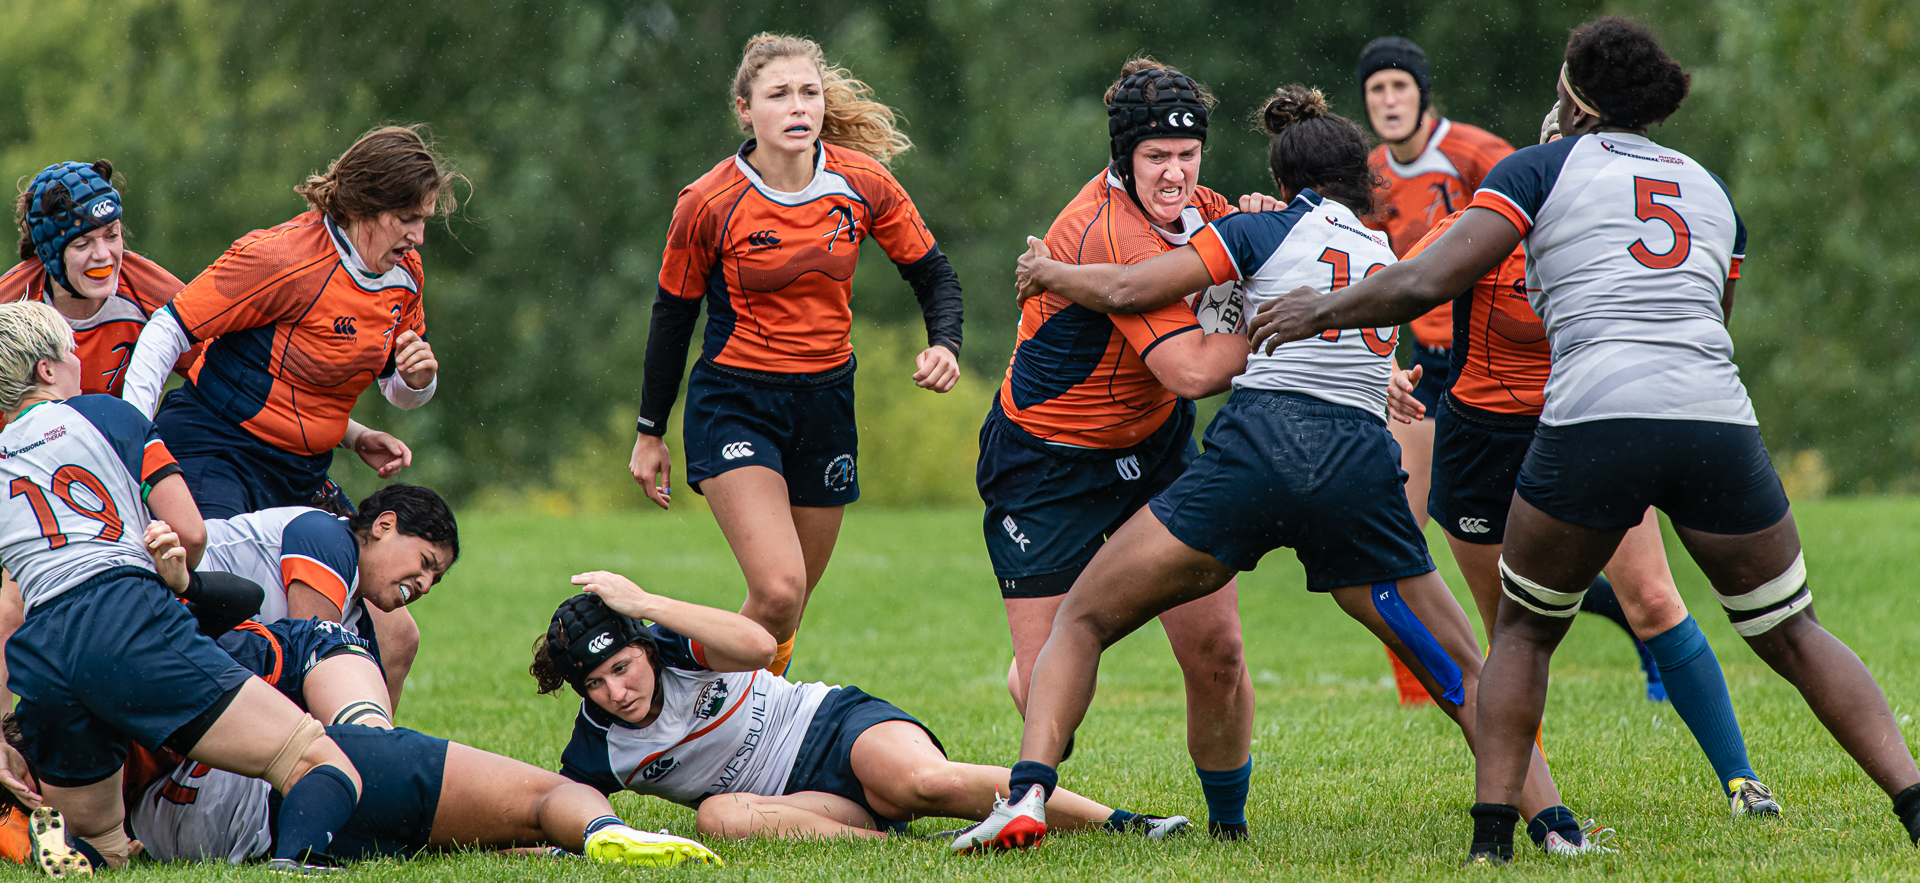 Bob Hosker - Rugby-Physical Play and Gri